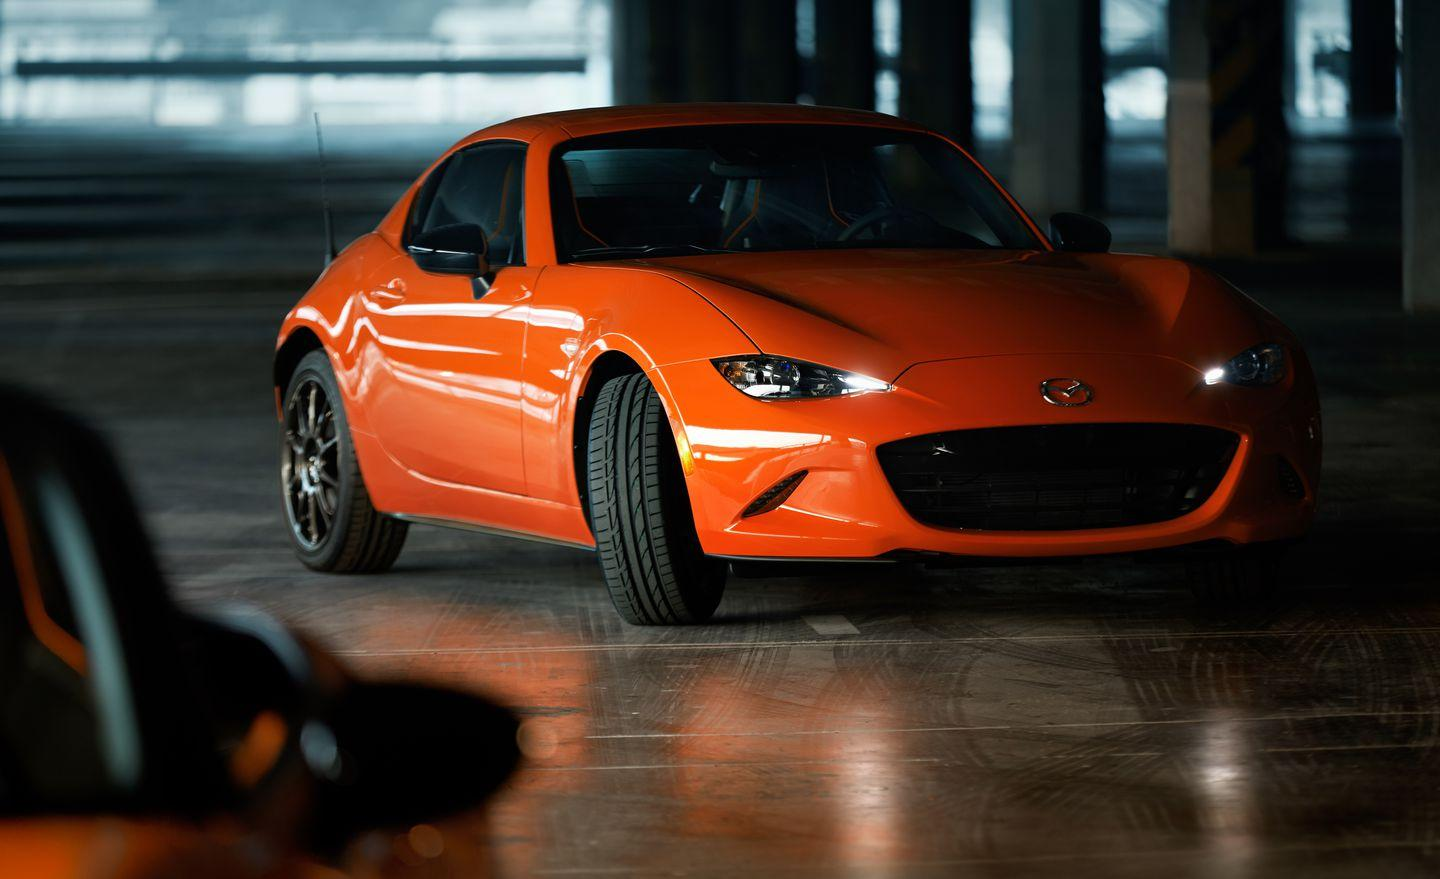 "<p>The new Racing Orange paint was developed specifically for the 30th Anniversary Miata, and Mazda says it ""represents sunrise and anticipation"" and ""evokes the breaking dawn of an exciting new day.""</p>"